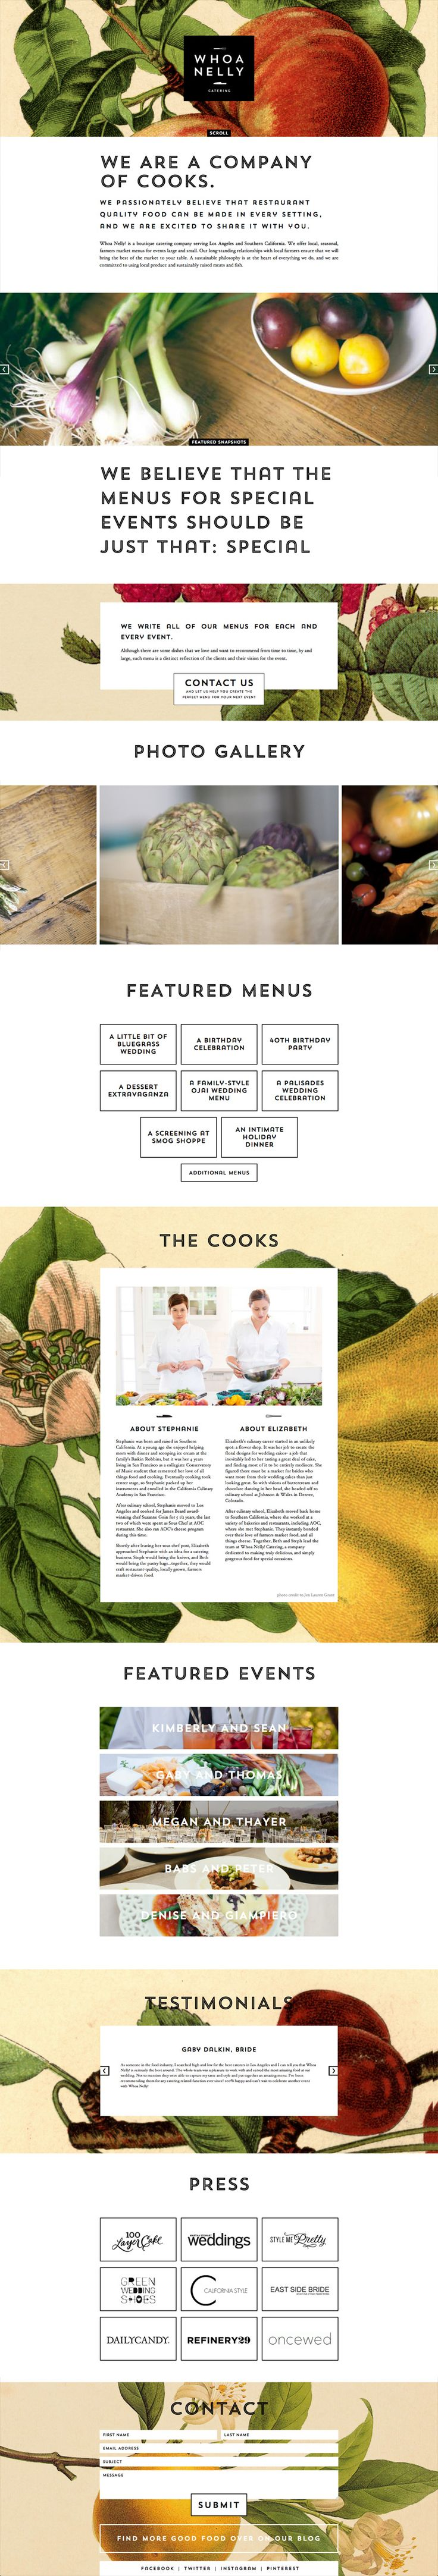 Whoa Nelly Catering website by Cody Small/Caava Design.